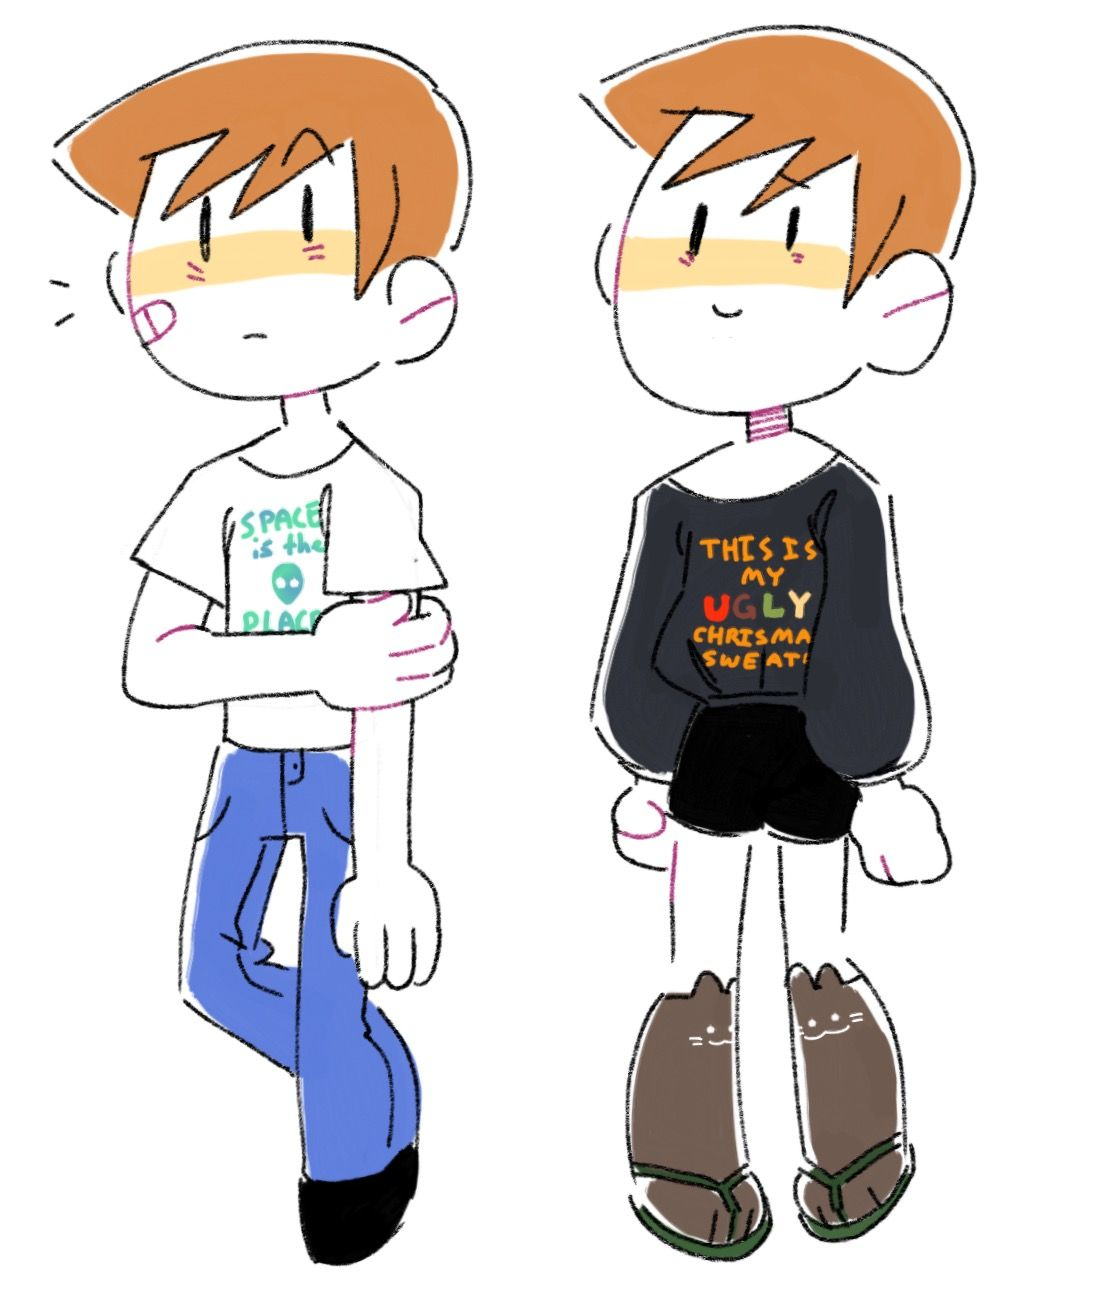 eddsworld jon | Tumblr | Character design | Art drawings ...